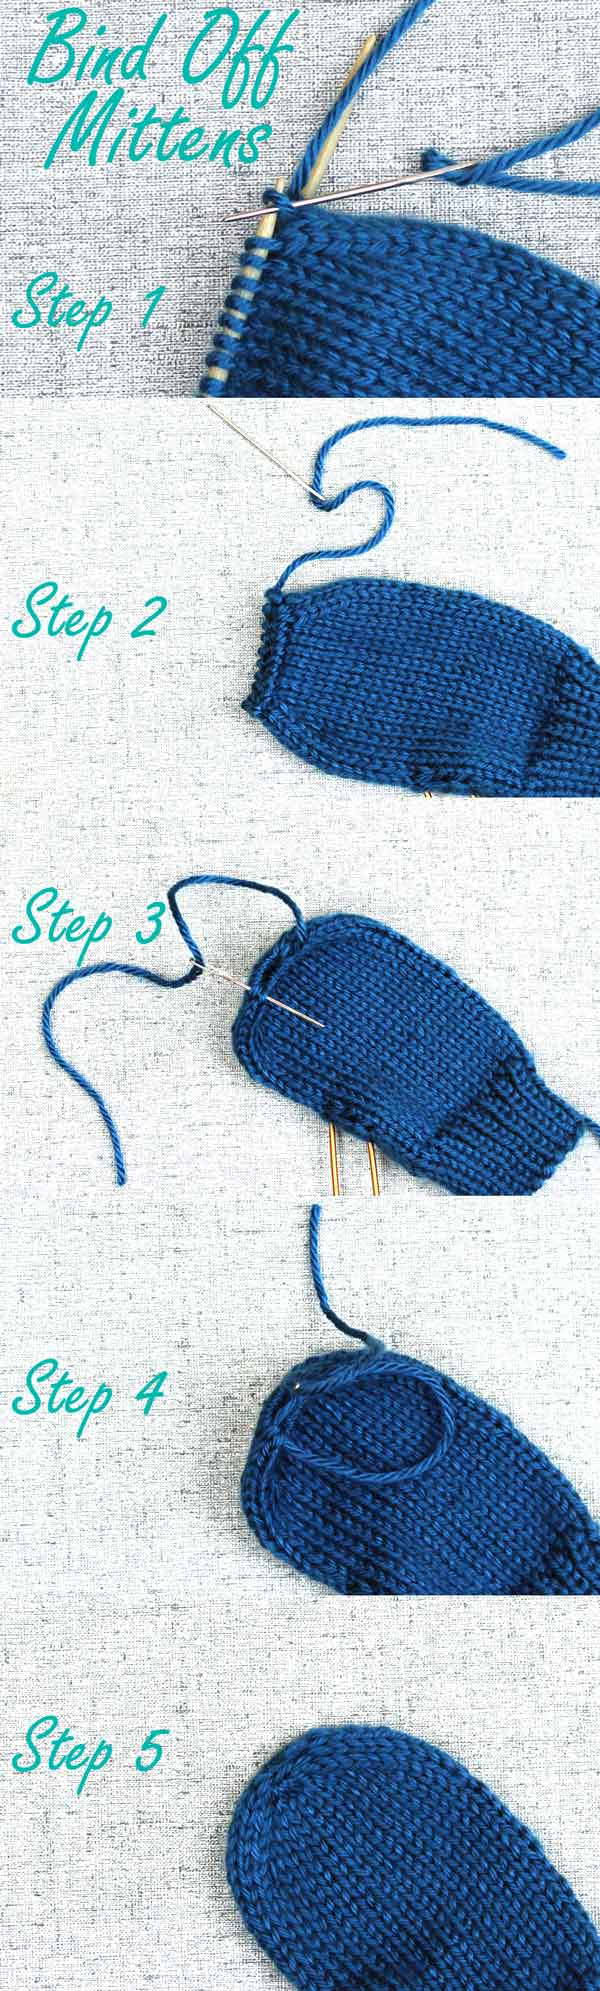 Binding Off Stitches In Knitting : Binding Off Mittens, Finishing tips for handknit mittens - PurlsAndPixels